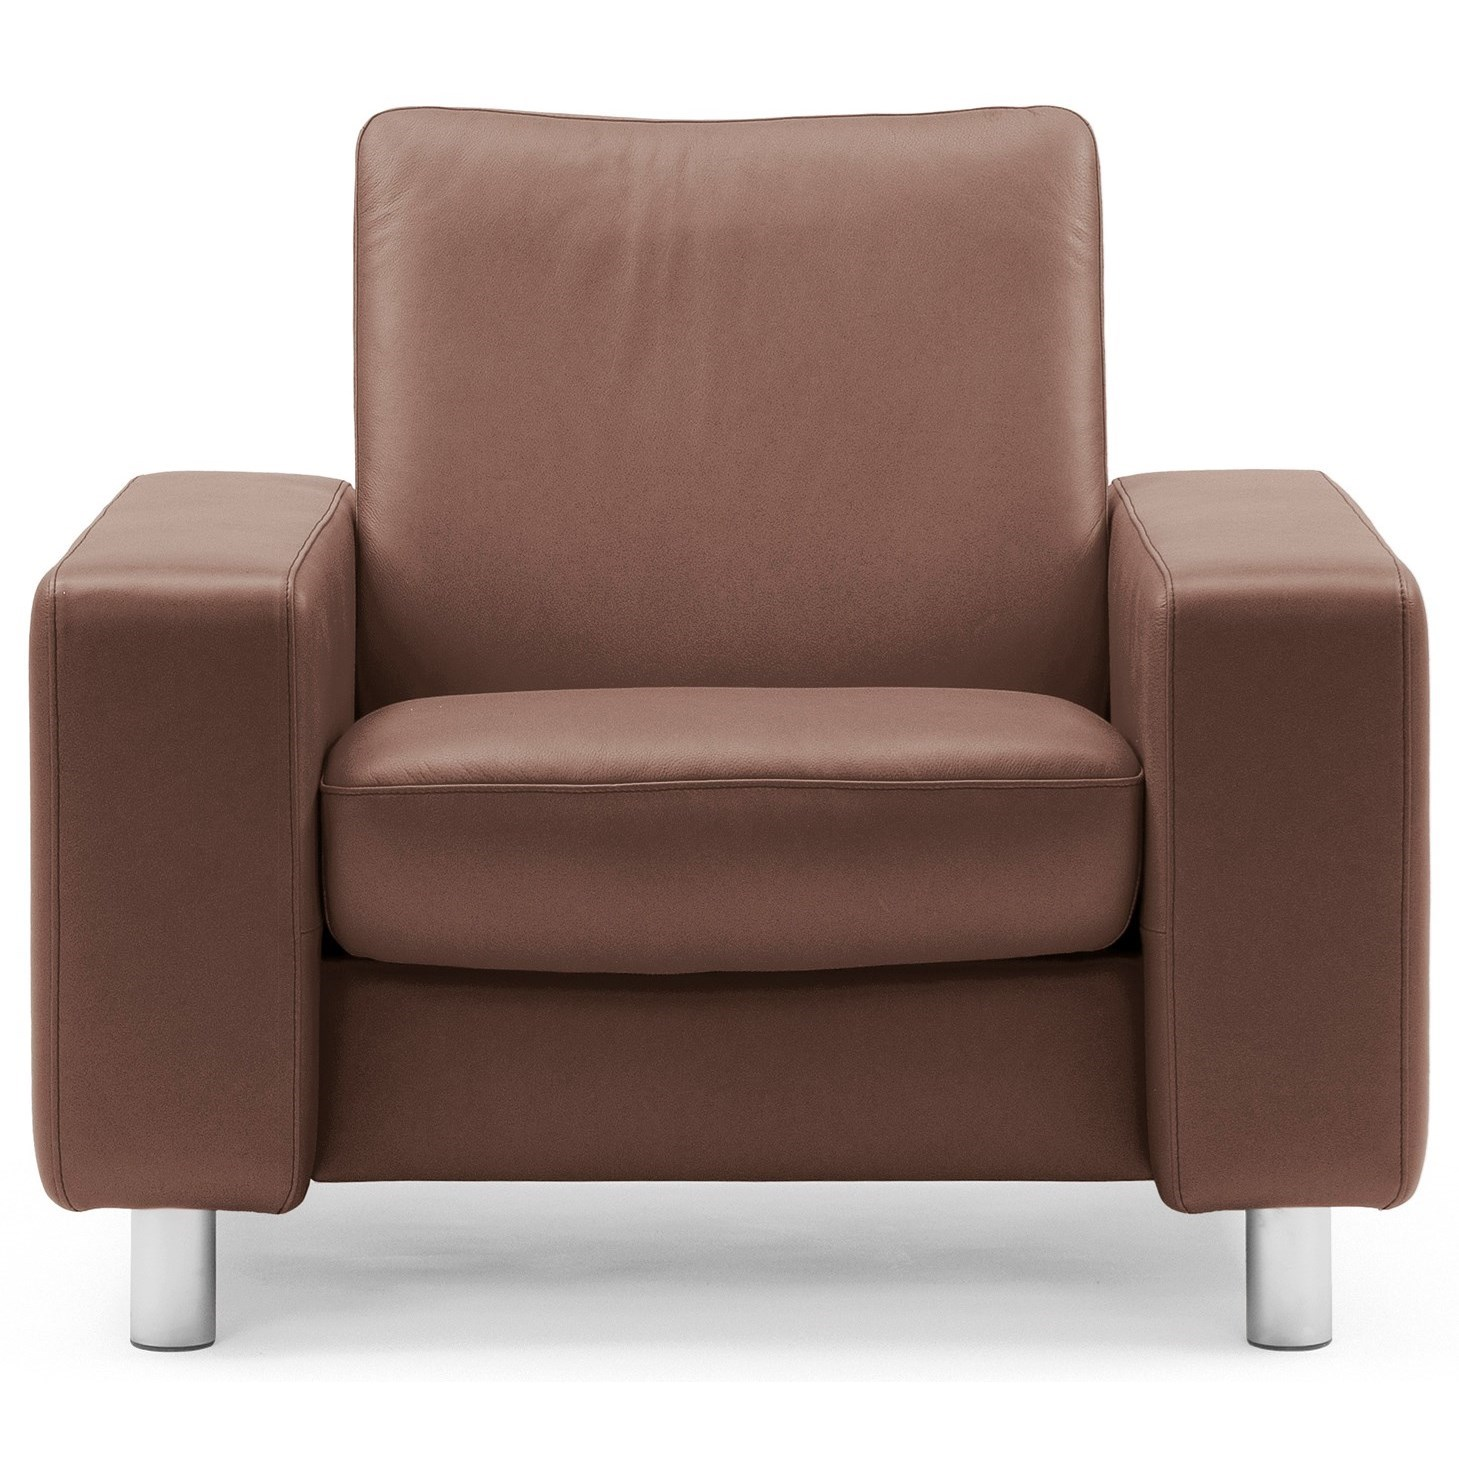 Arion 19 - A20 Low-Back Reclining Chair by Stressless at Bennett's Furniture and Mattresses